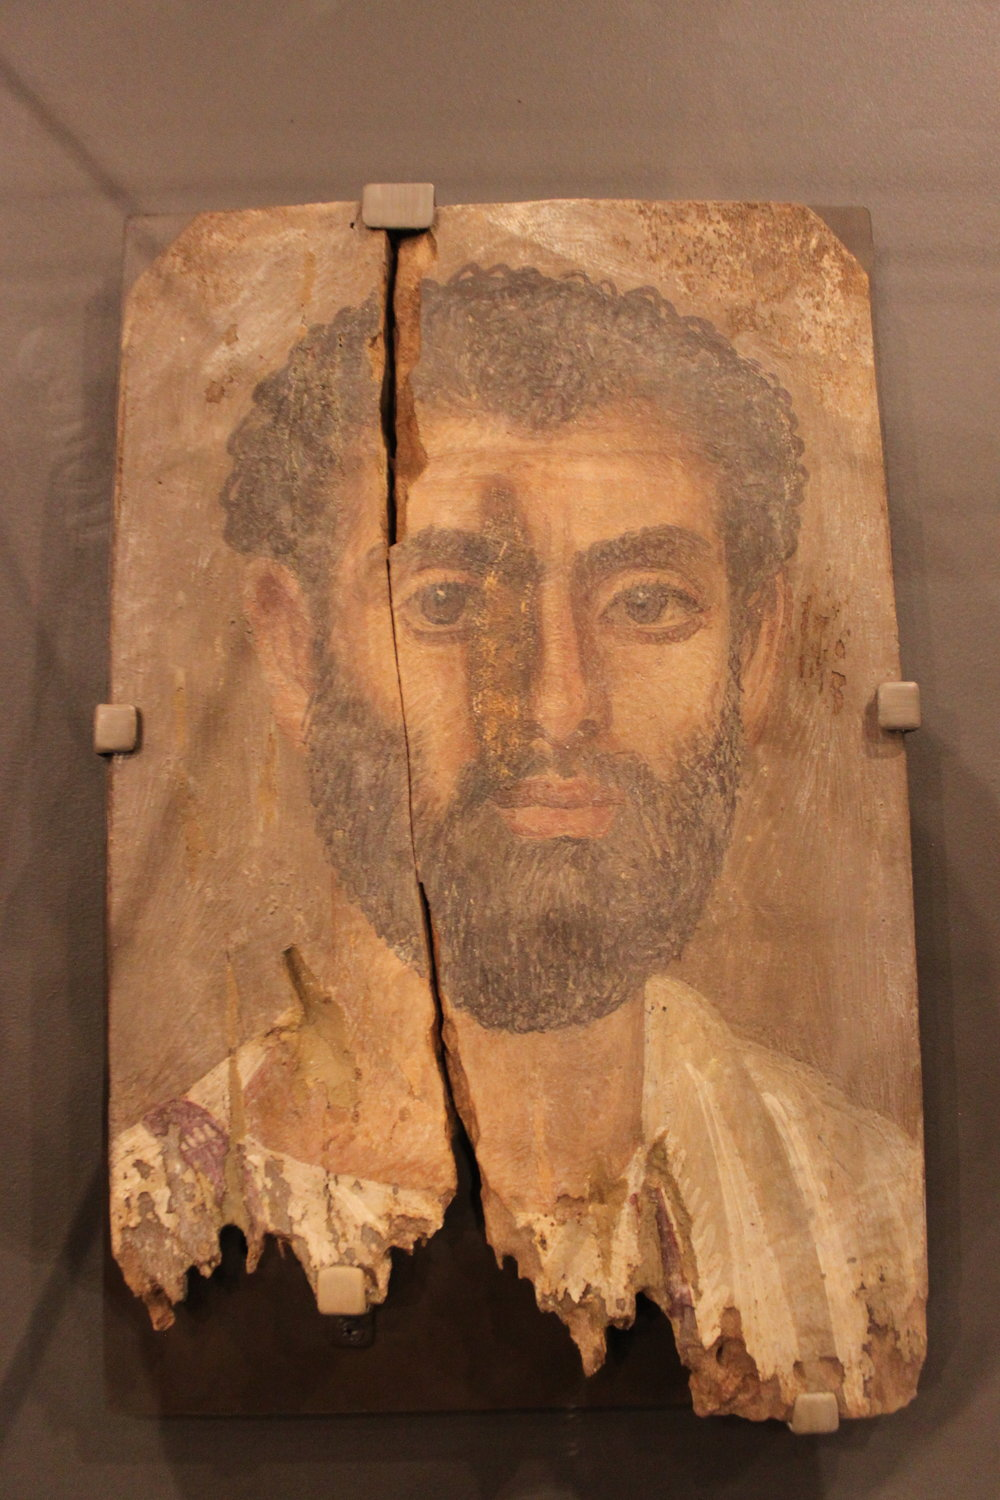 Mummy Portrait of Bearded Man - Roman period (30 BCE  - 295 CE)